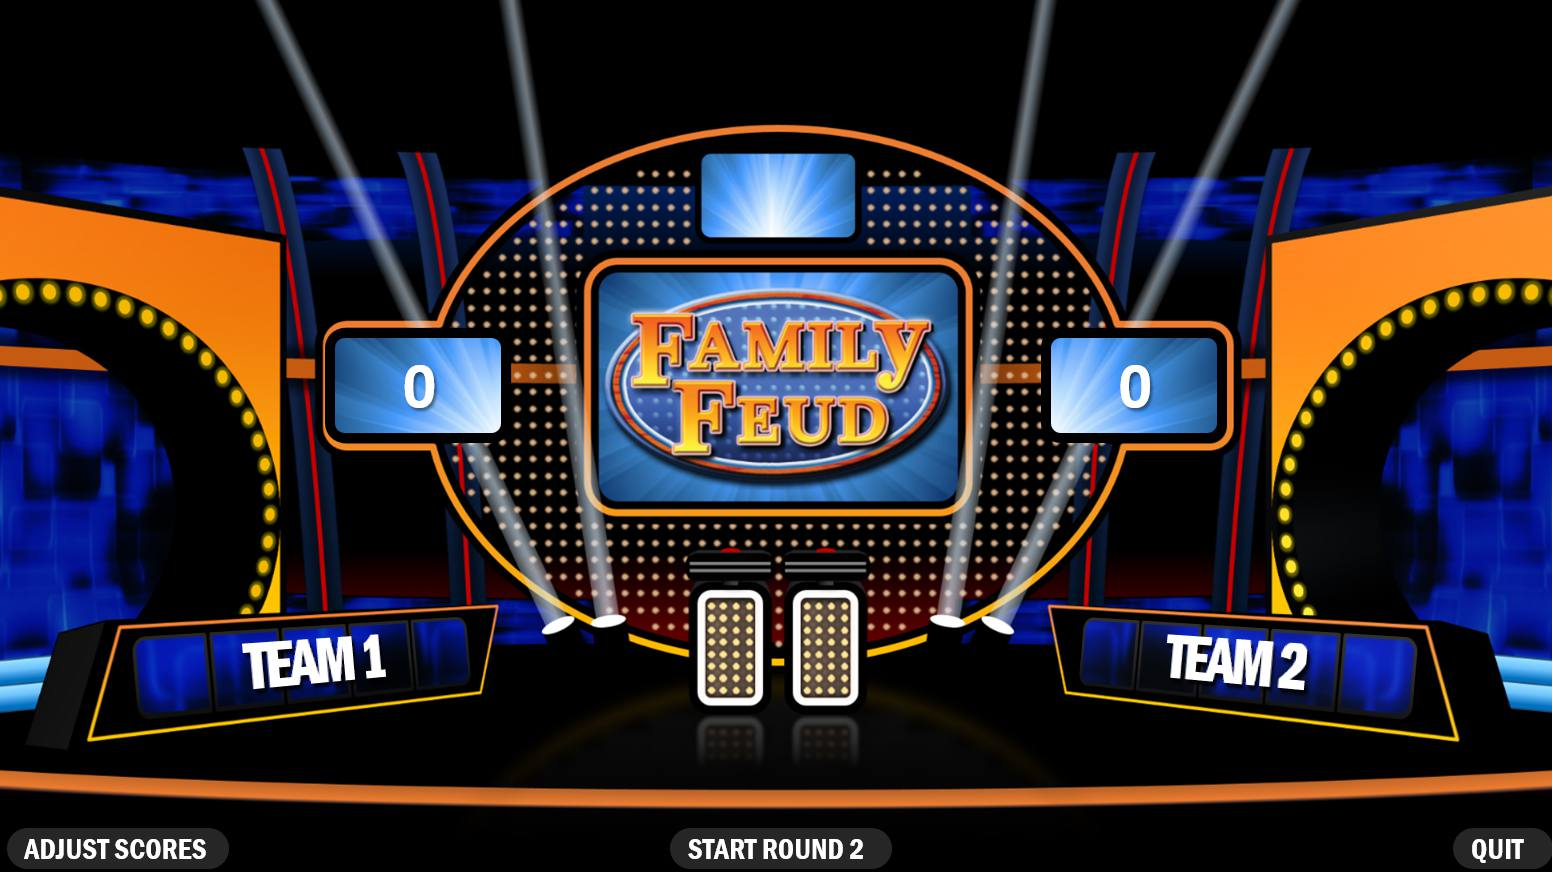 a family feud team screen